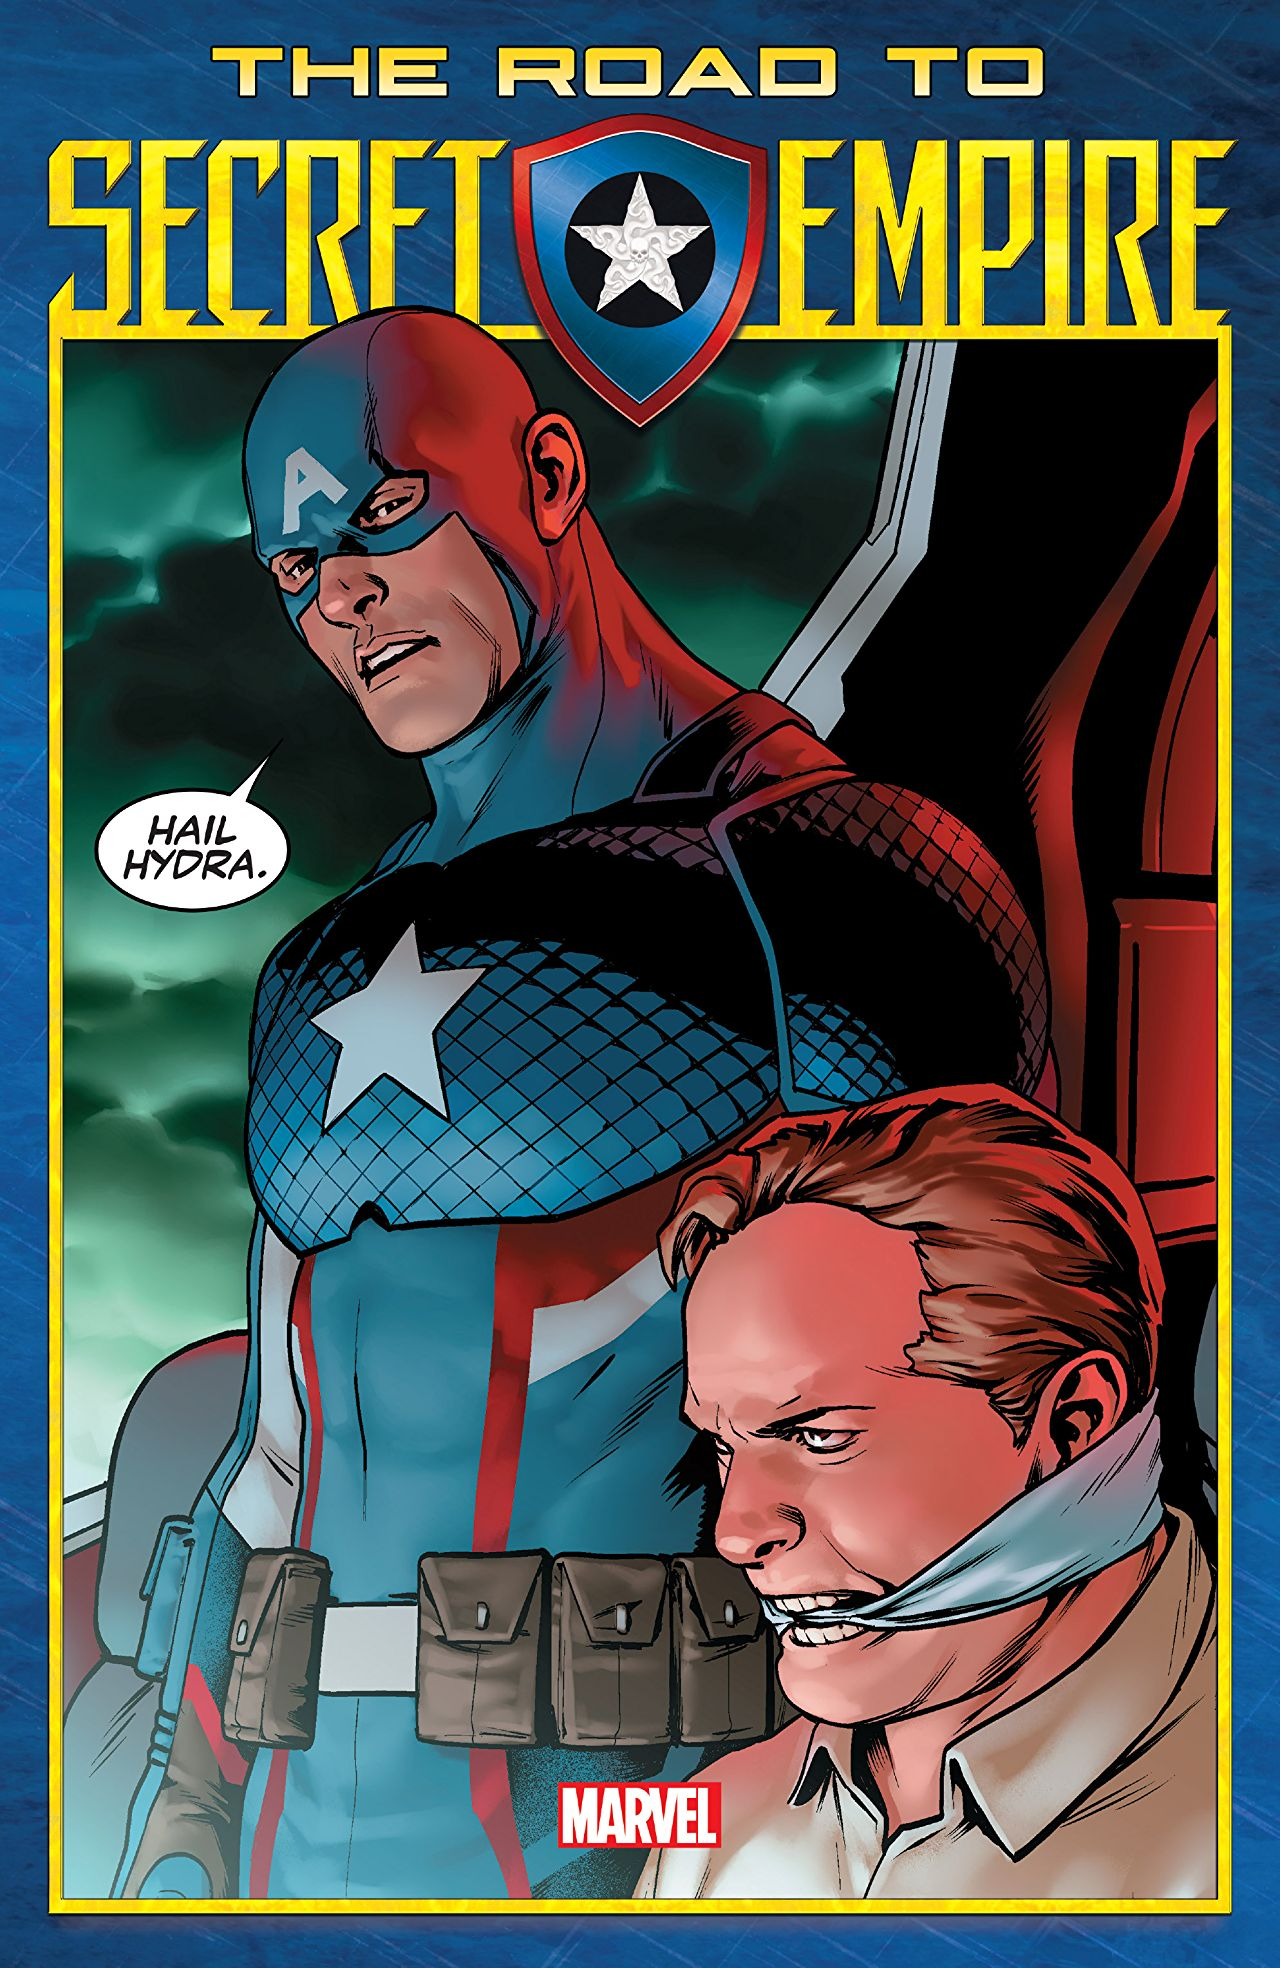 The Road to Secret Empire Review